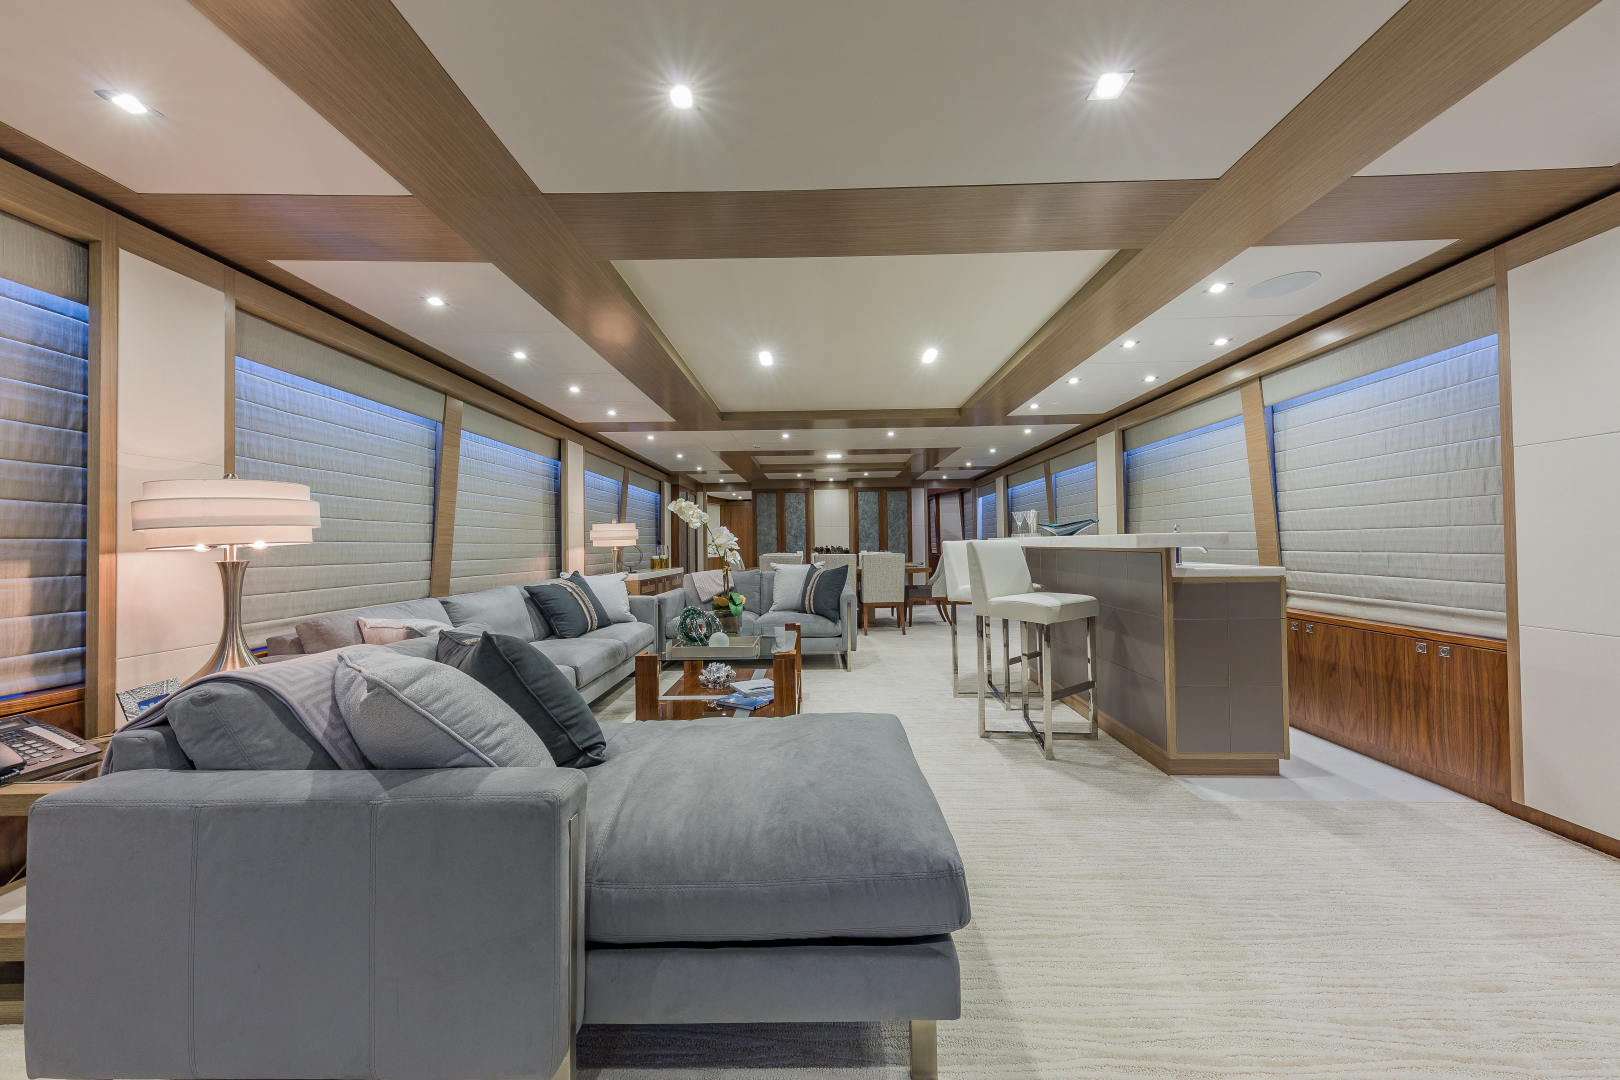 100 Hargrave Motoryacht 2018 Yacht For Sale Mb Iii 33976 Fuel Filter